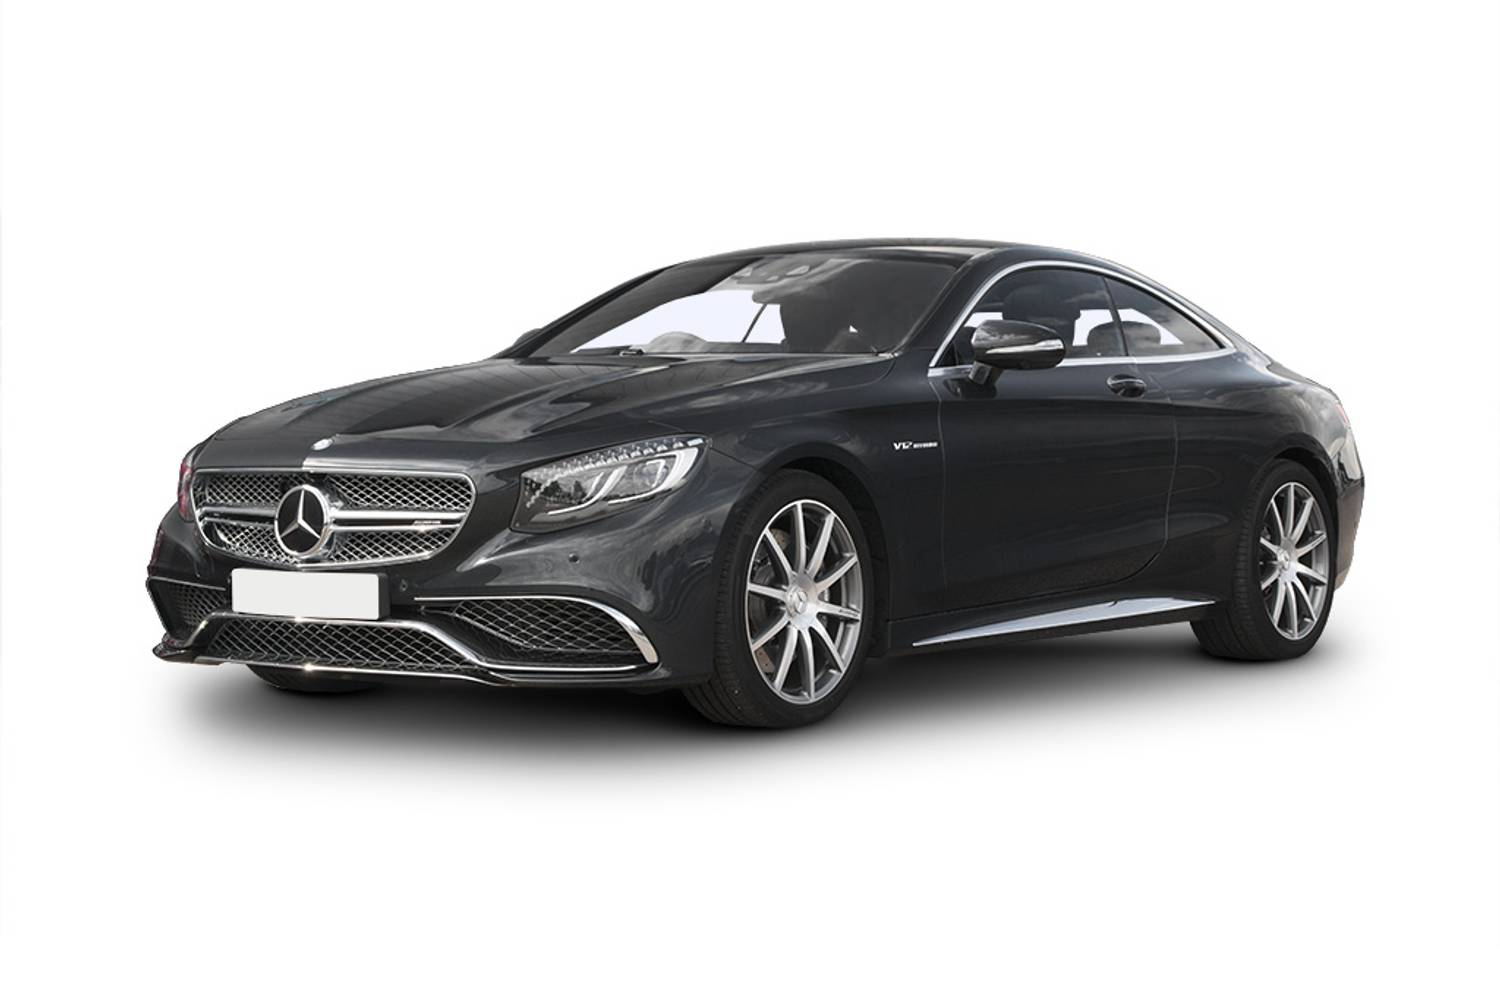 new mercedes benz s class amg coupe s63 2 door auto 2014. Black Bedroom Furniture Sets. Home Design Ideas